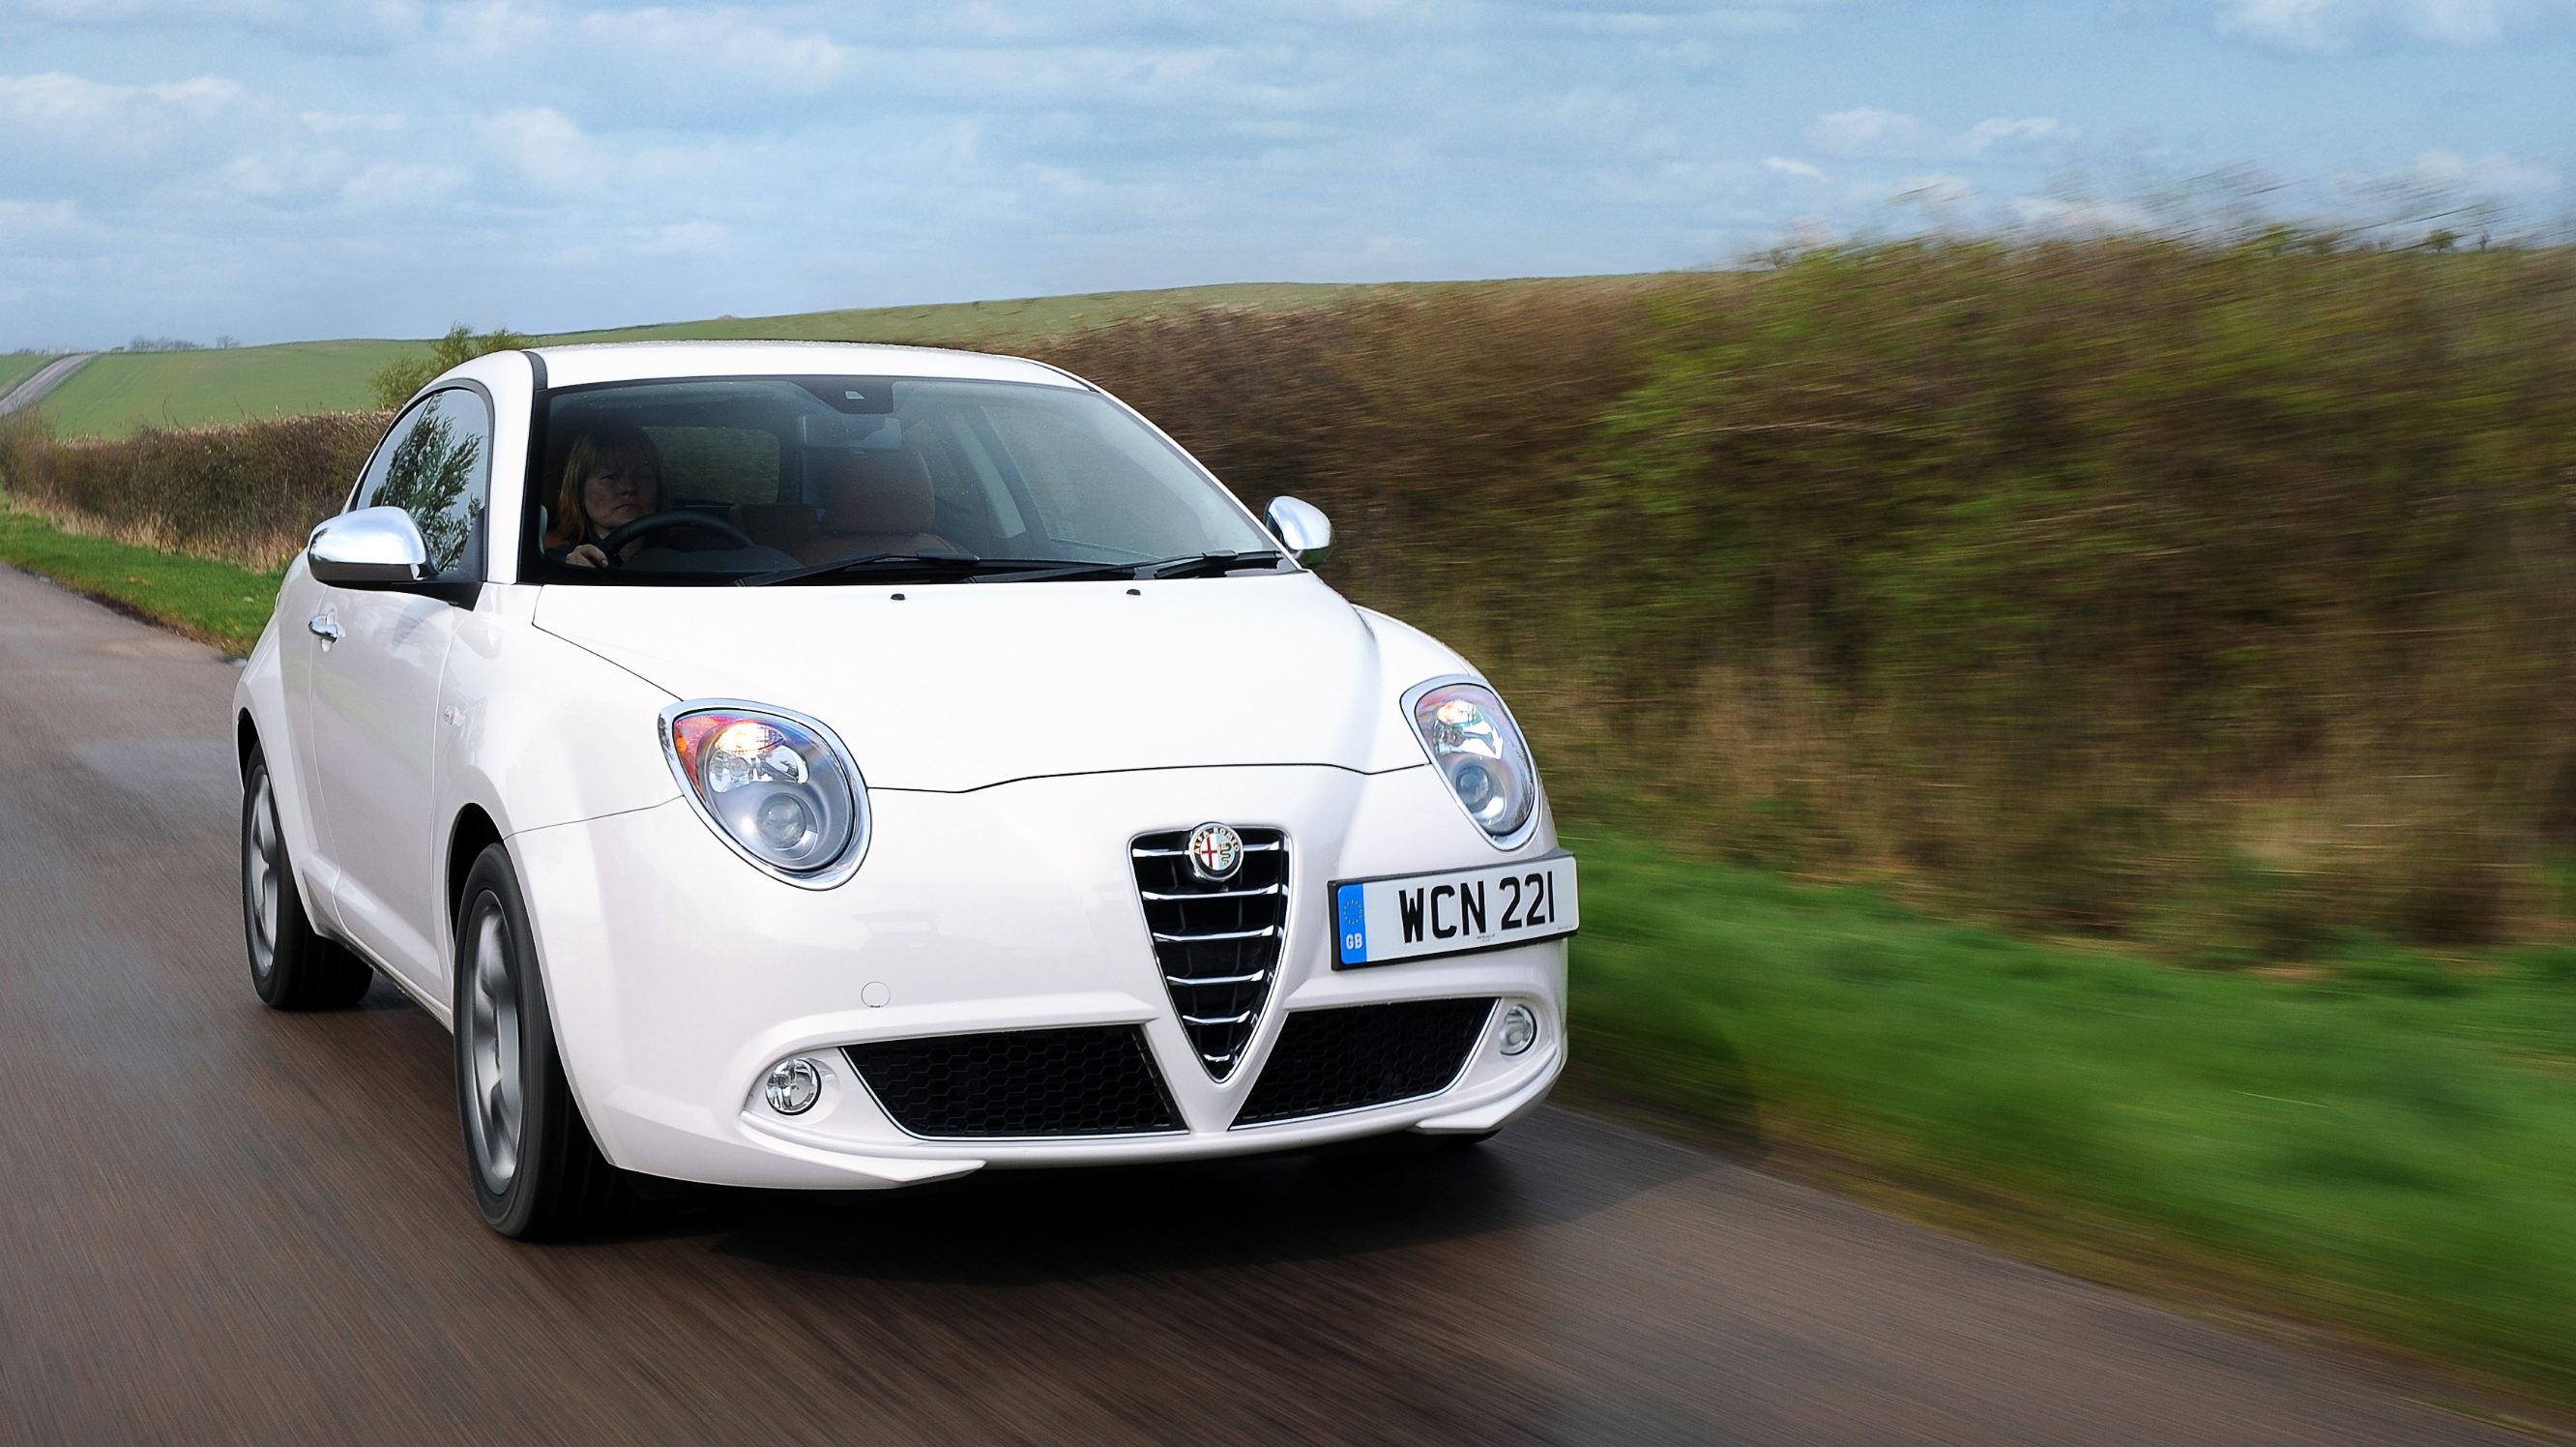 alfa romeo mito review 2017 top gear. Black Bedroom Furniture Sets. Home Design Ideas